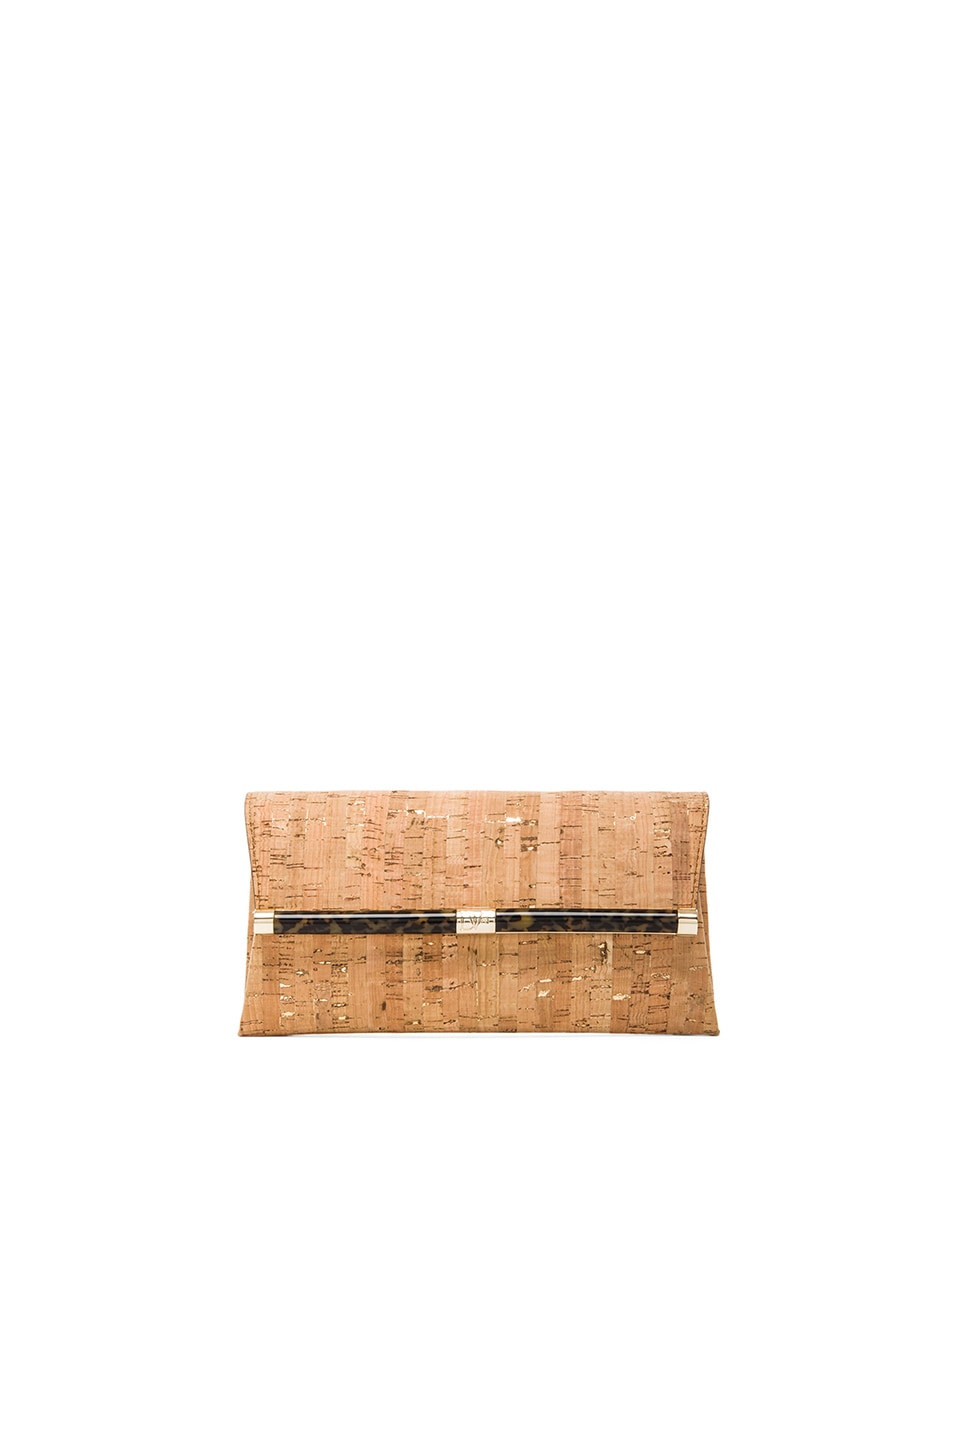 Diane von Furstenberg Envelope Clutch in Natural